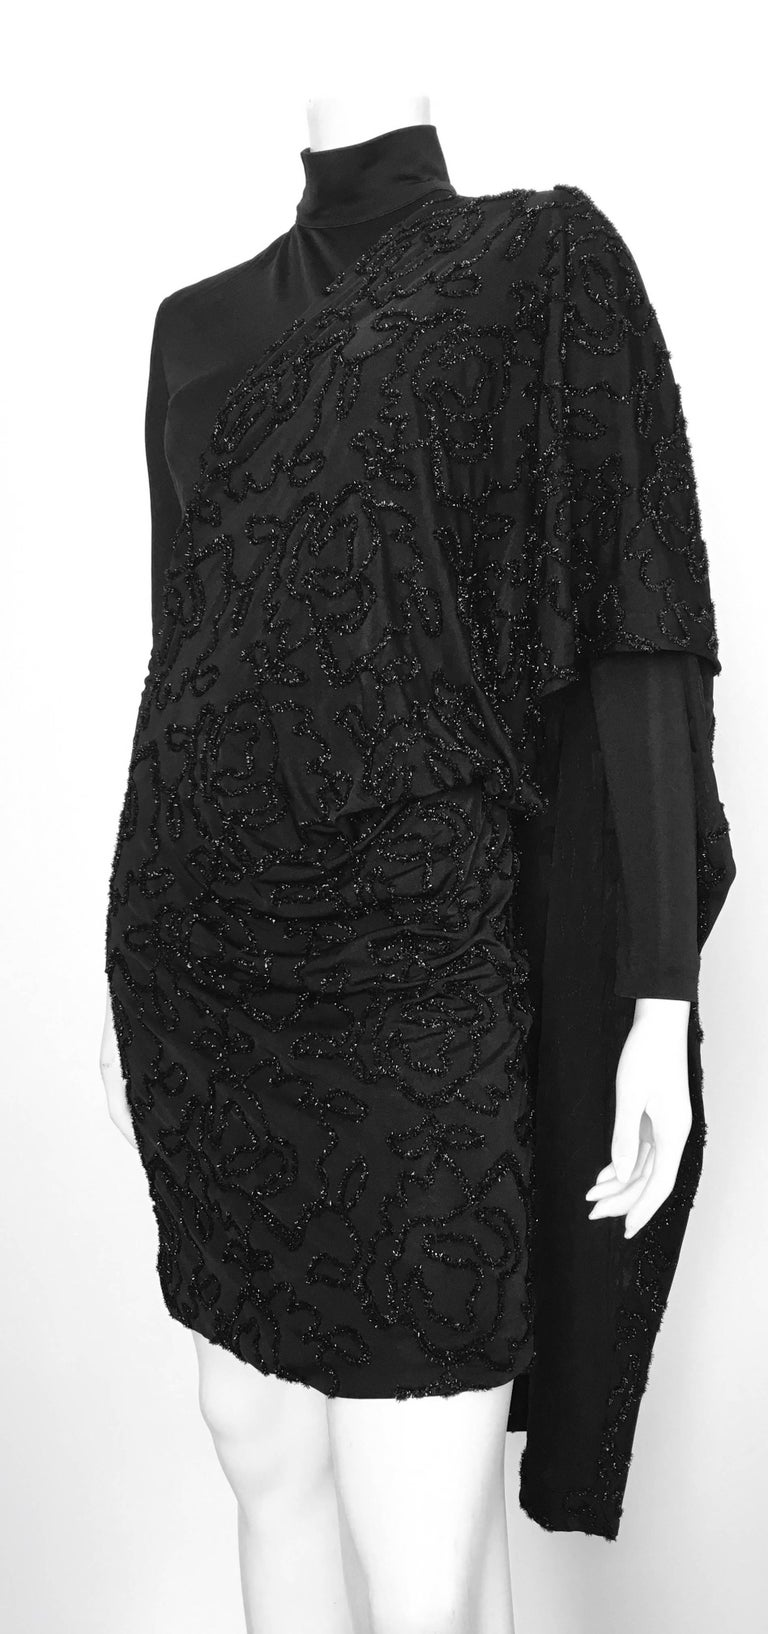 Patrick Kelly 1980s Black Cocktail Dress Size 4 / 6.  For Sale 2